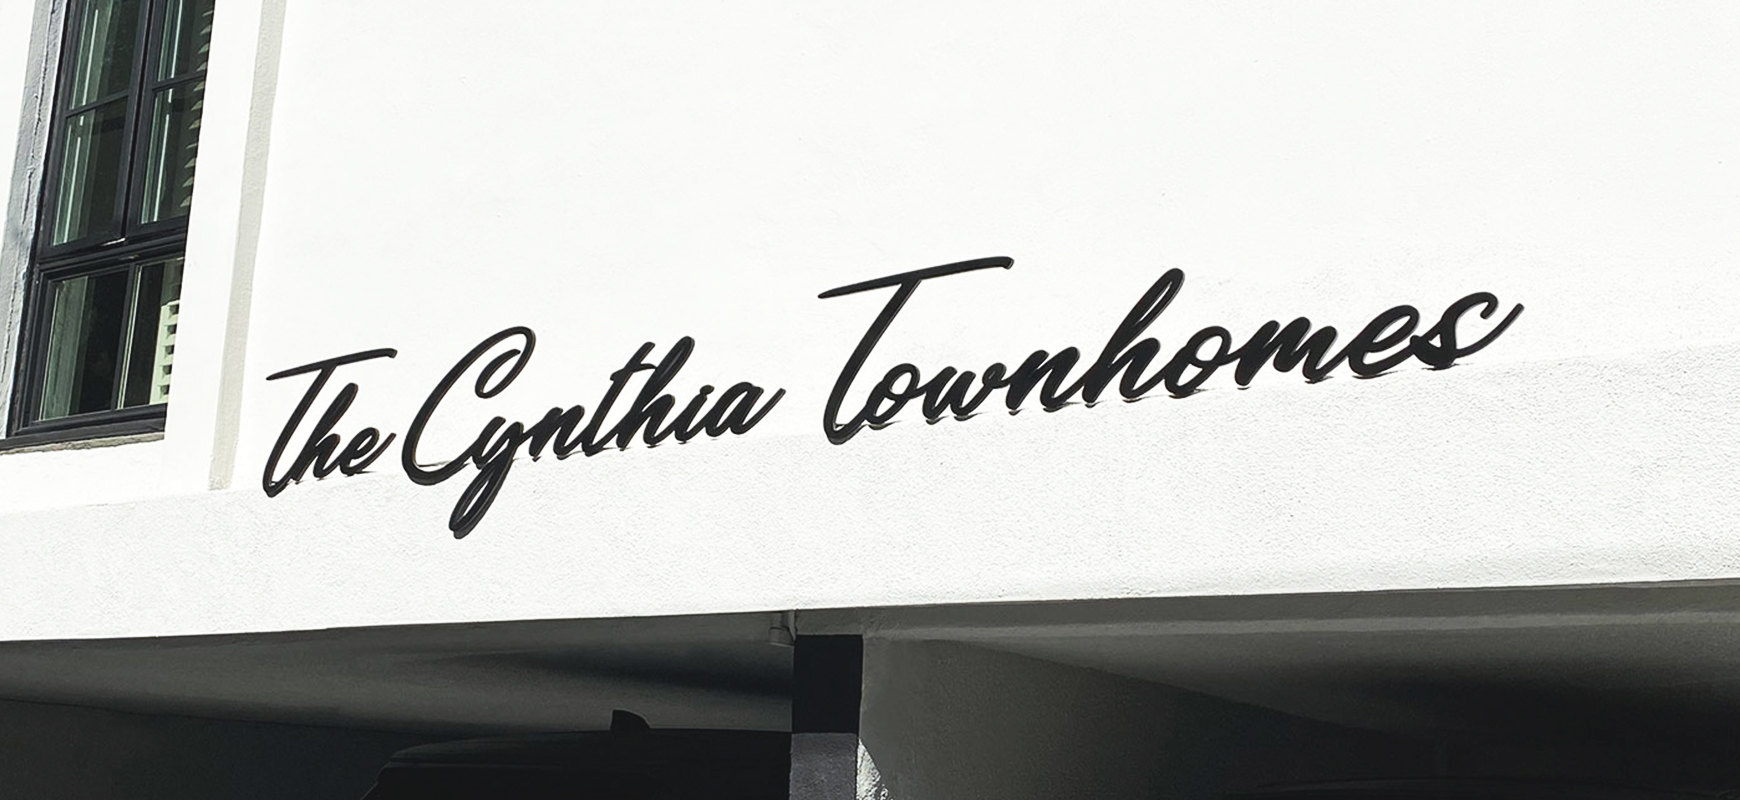 The Cynthia Townhomes 3d metal letters displaying the company name made of aluminum